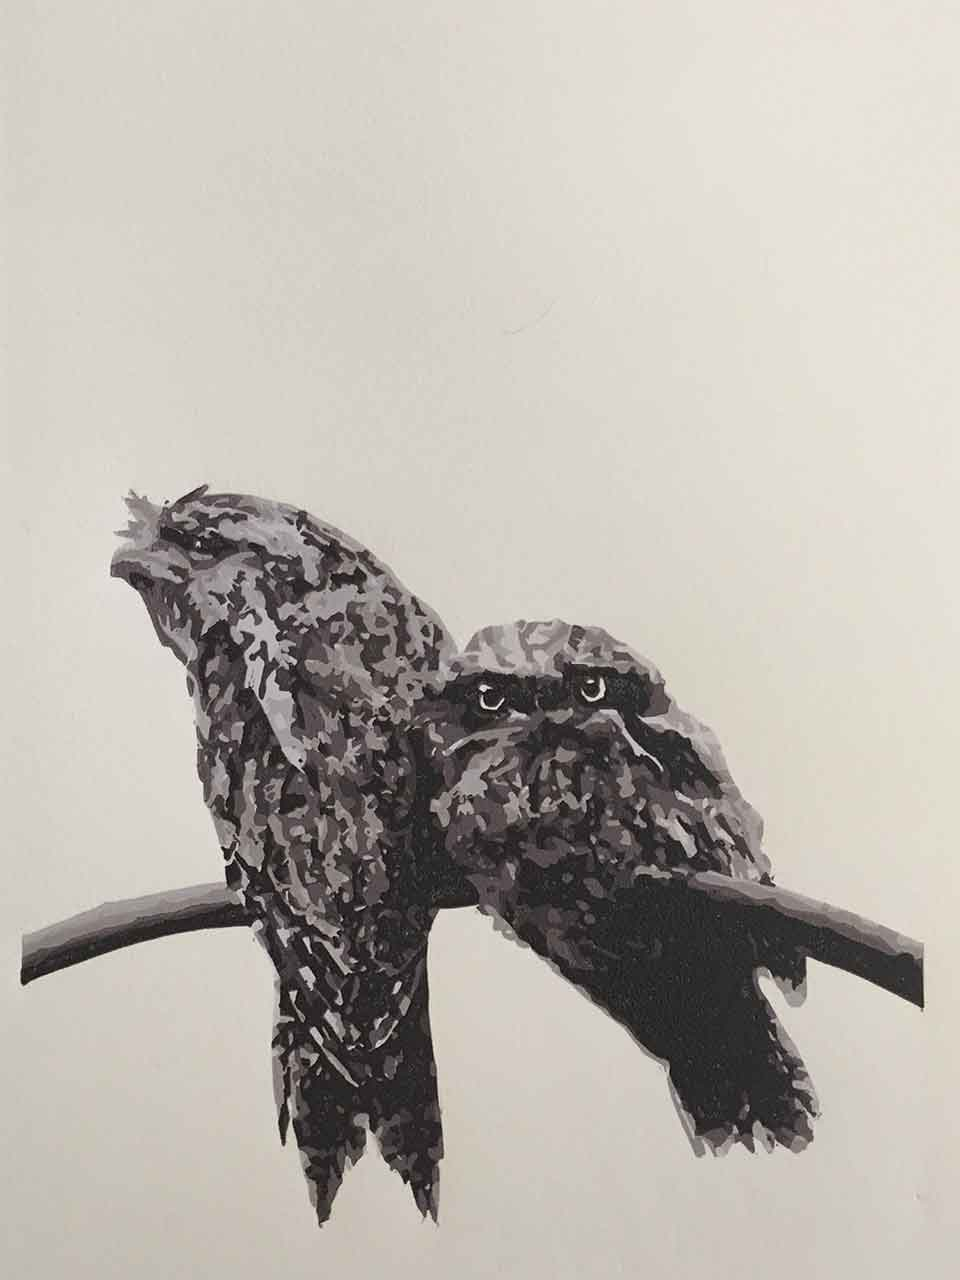 Tawny Frogmouth mother and chick reductive linoprint - 6th colour